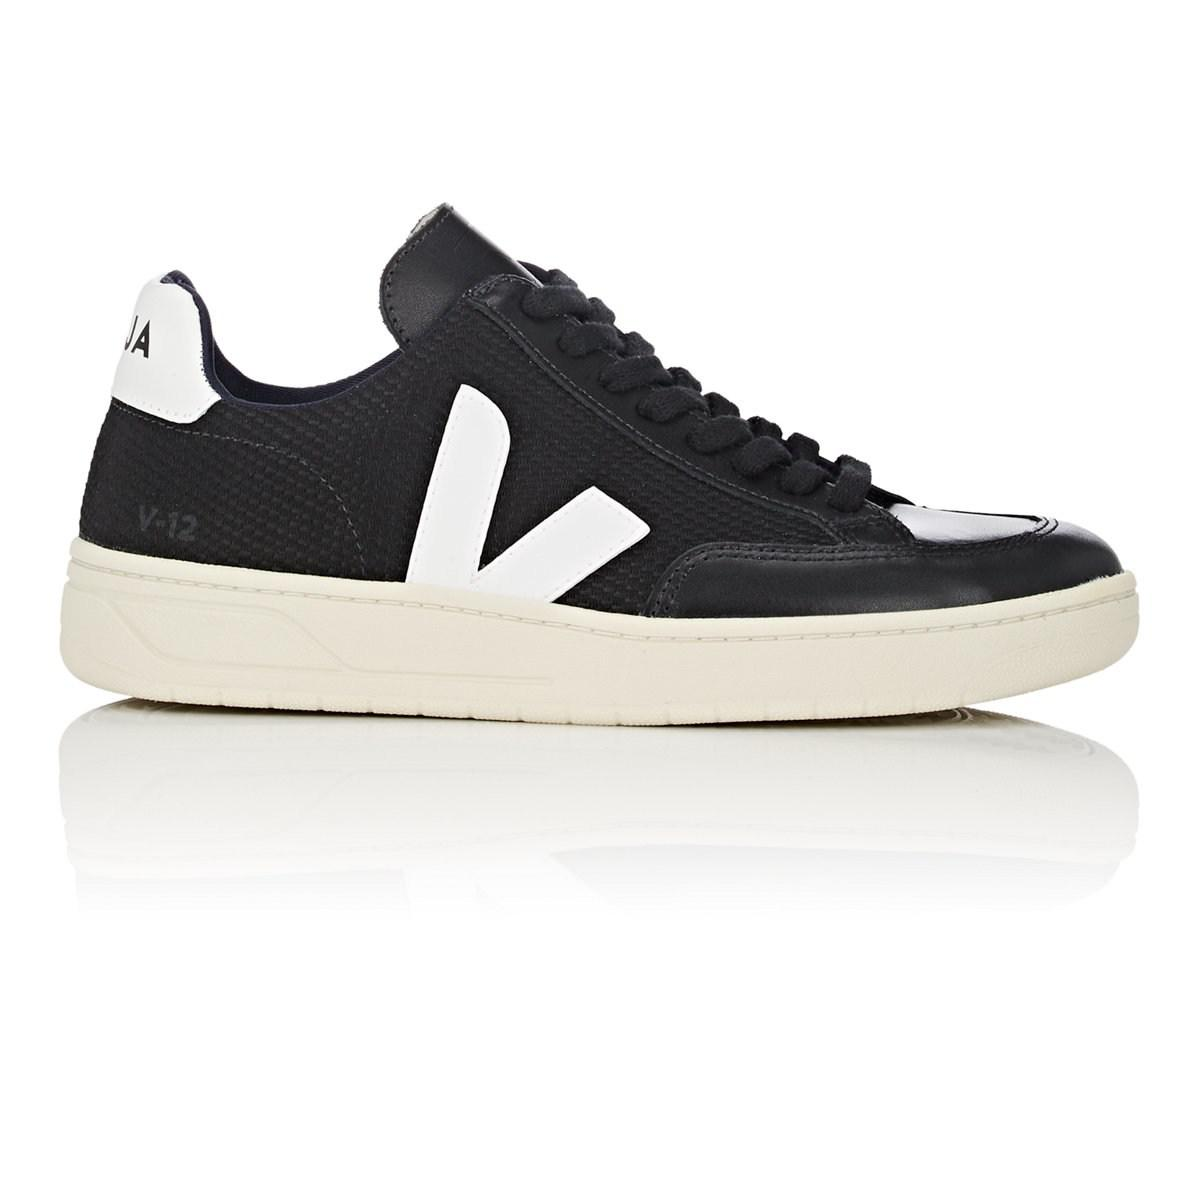 3a5bf69cb83a Veja. Women s Black V-12 Mesh   Leather Sneakers.  140 From Barneys New York